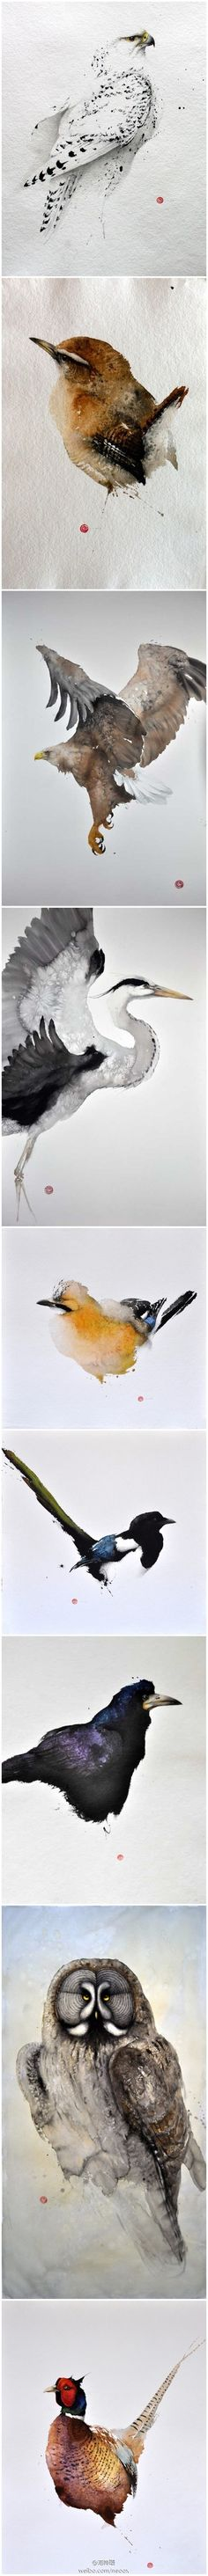 karl martens bird paintings - amazingly spirited watercolor paintings